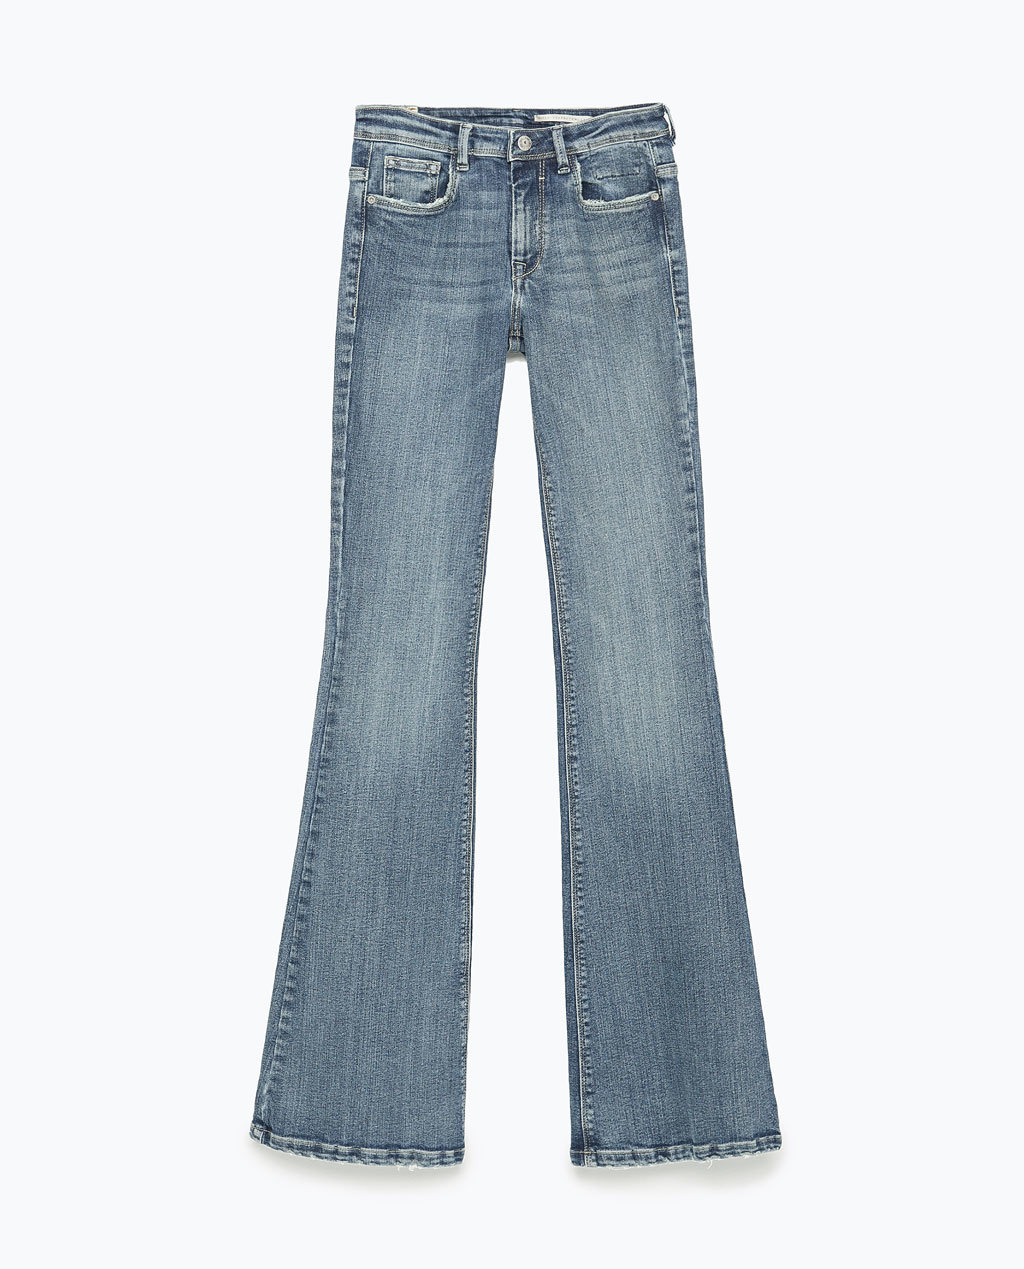 """Flare"" Jeans - style: flares; length: standard; pattern: plain; waist: high rise; pocket detail: traditional 5 pocket; predominant colour: denim; occasions: casual, creative work; fibres: cotton - stretch; jeans detail: whiskering, shading down centre of thigh; texture group: denim; pattern type: fabric; season: s/s 2015"